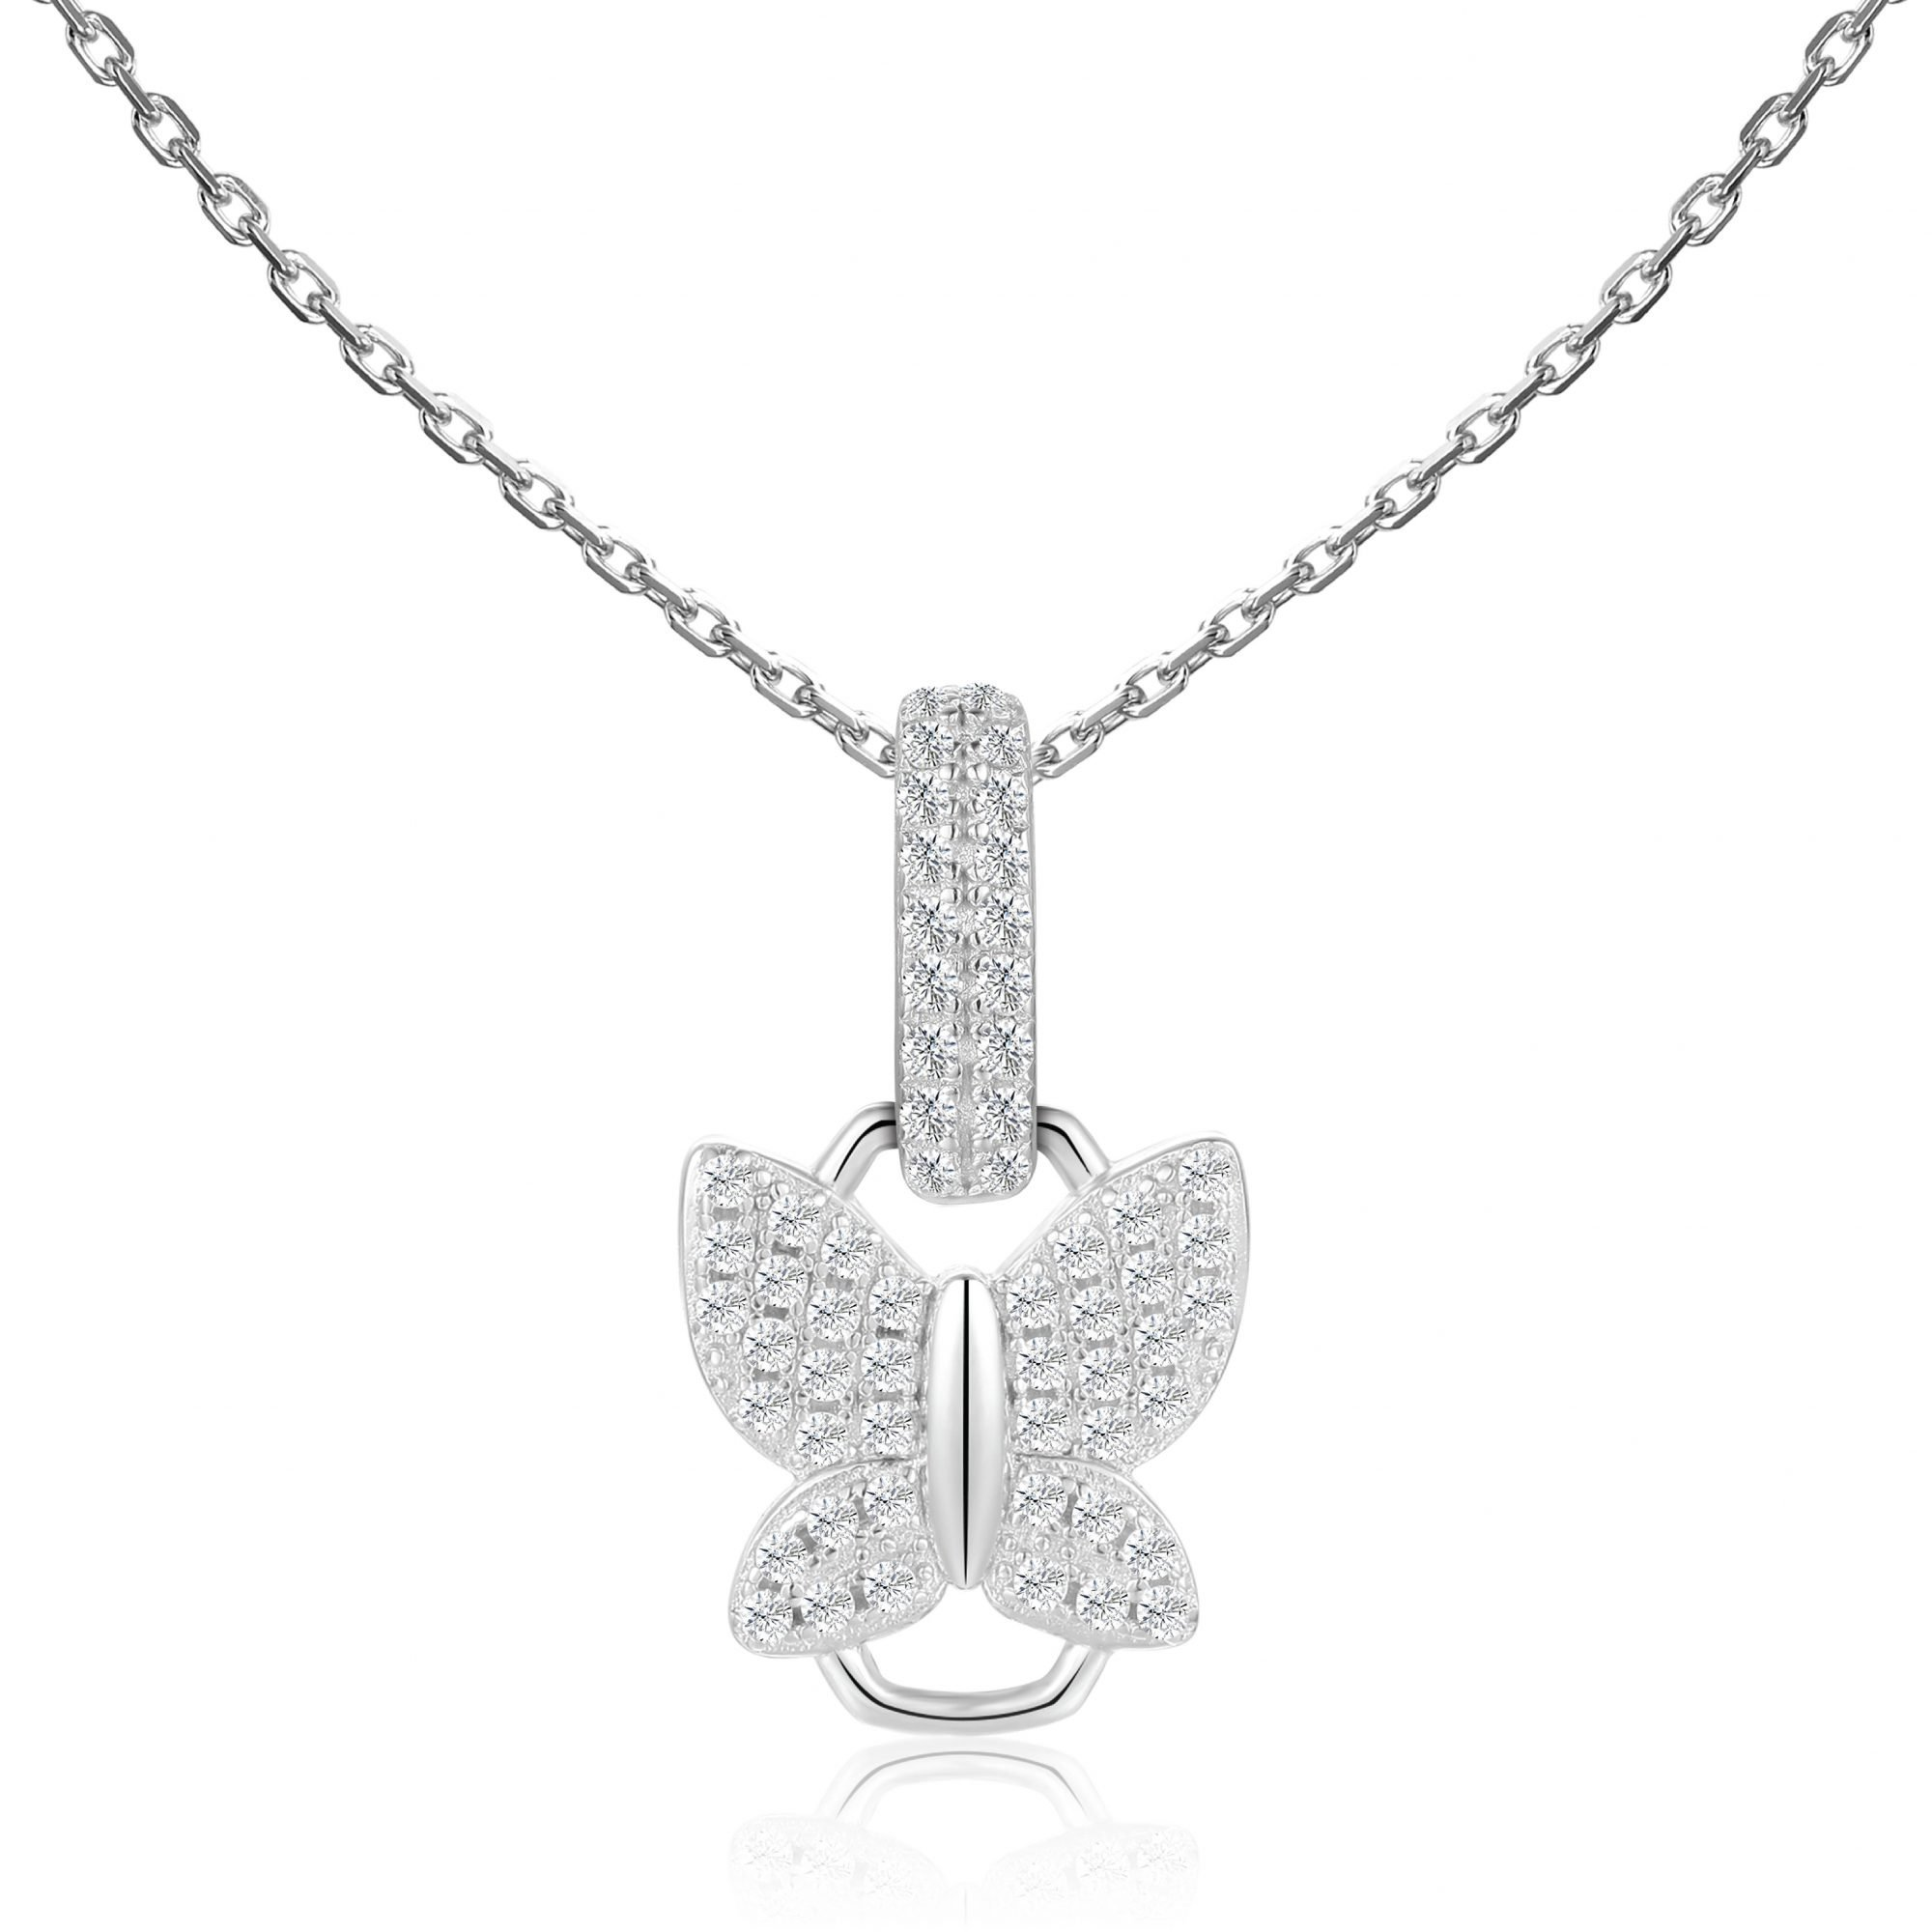 """VIKTOR ALEXANDER 925 SILVER PENDANT JEWELLERY WHITE SAPPHIRE GEMSTONE WITH 18"""" 925 SILVER CHAIN CONNECTOR BUTTERFLY CHARM"""